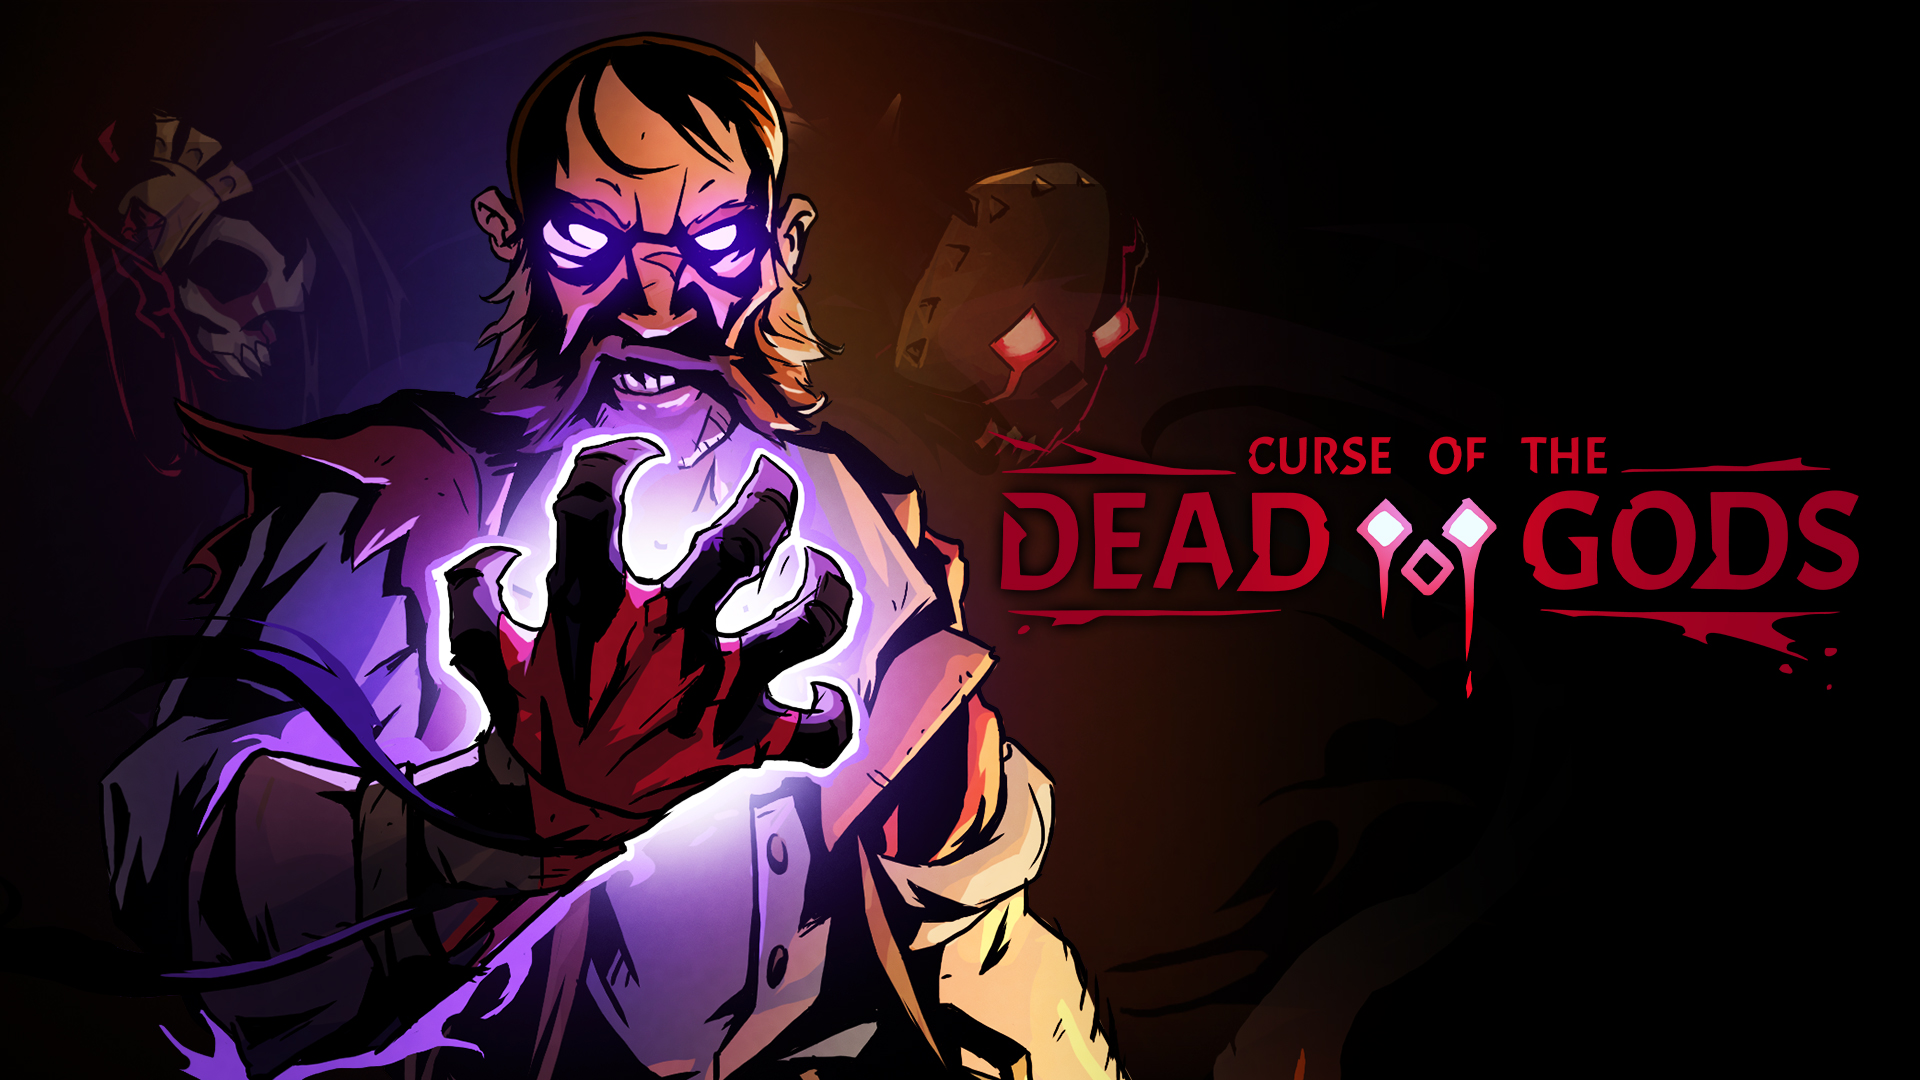 'Curse of the Dead Gods' is an addictive hack-and-slash roguelite